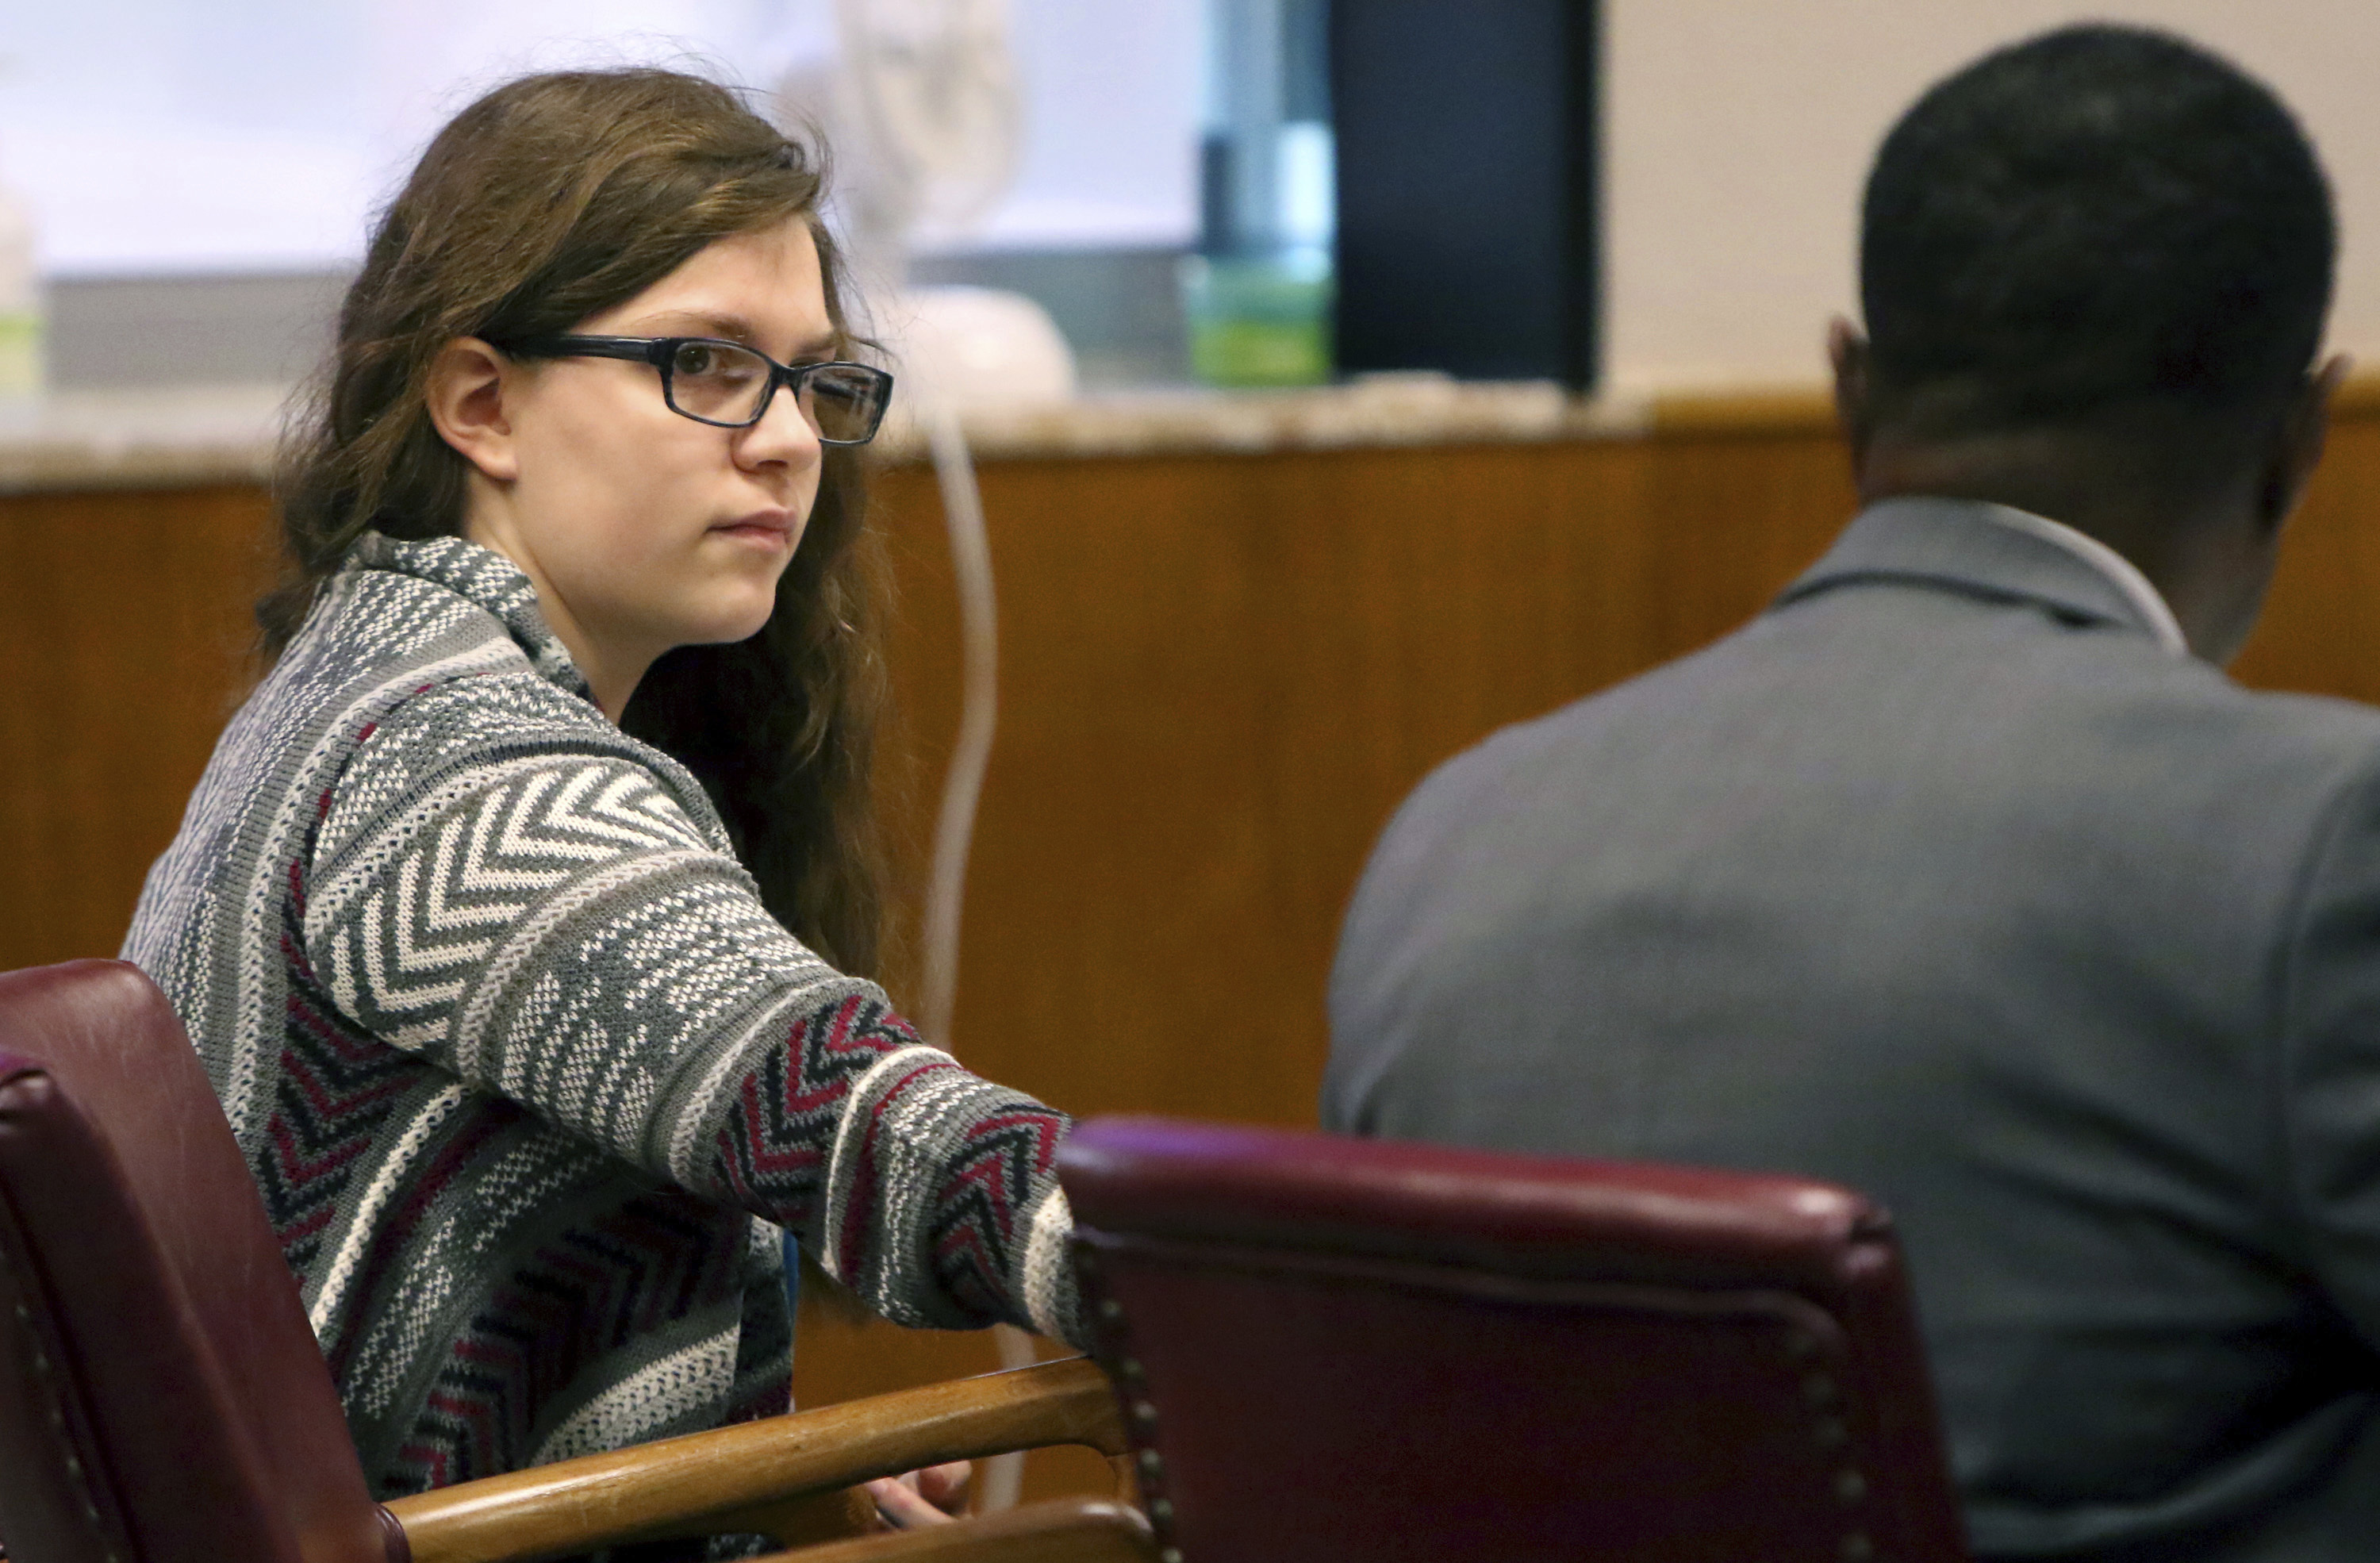 Slender Man stabbing victim says defendant obsessed